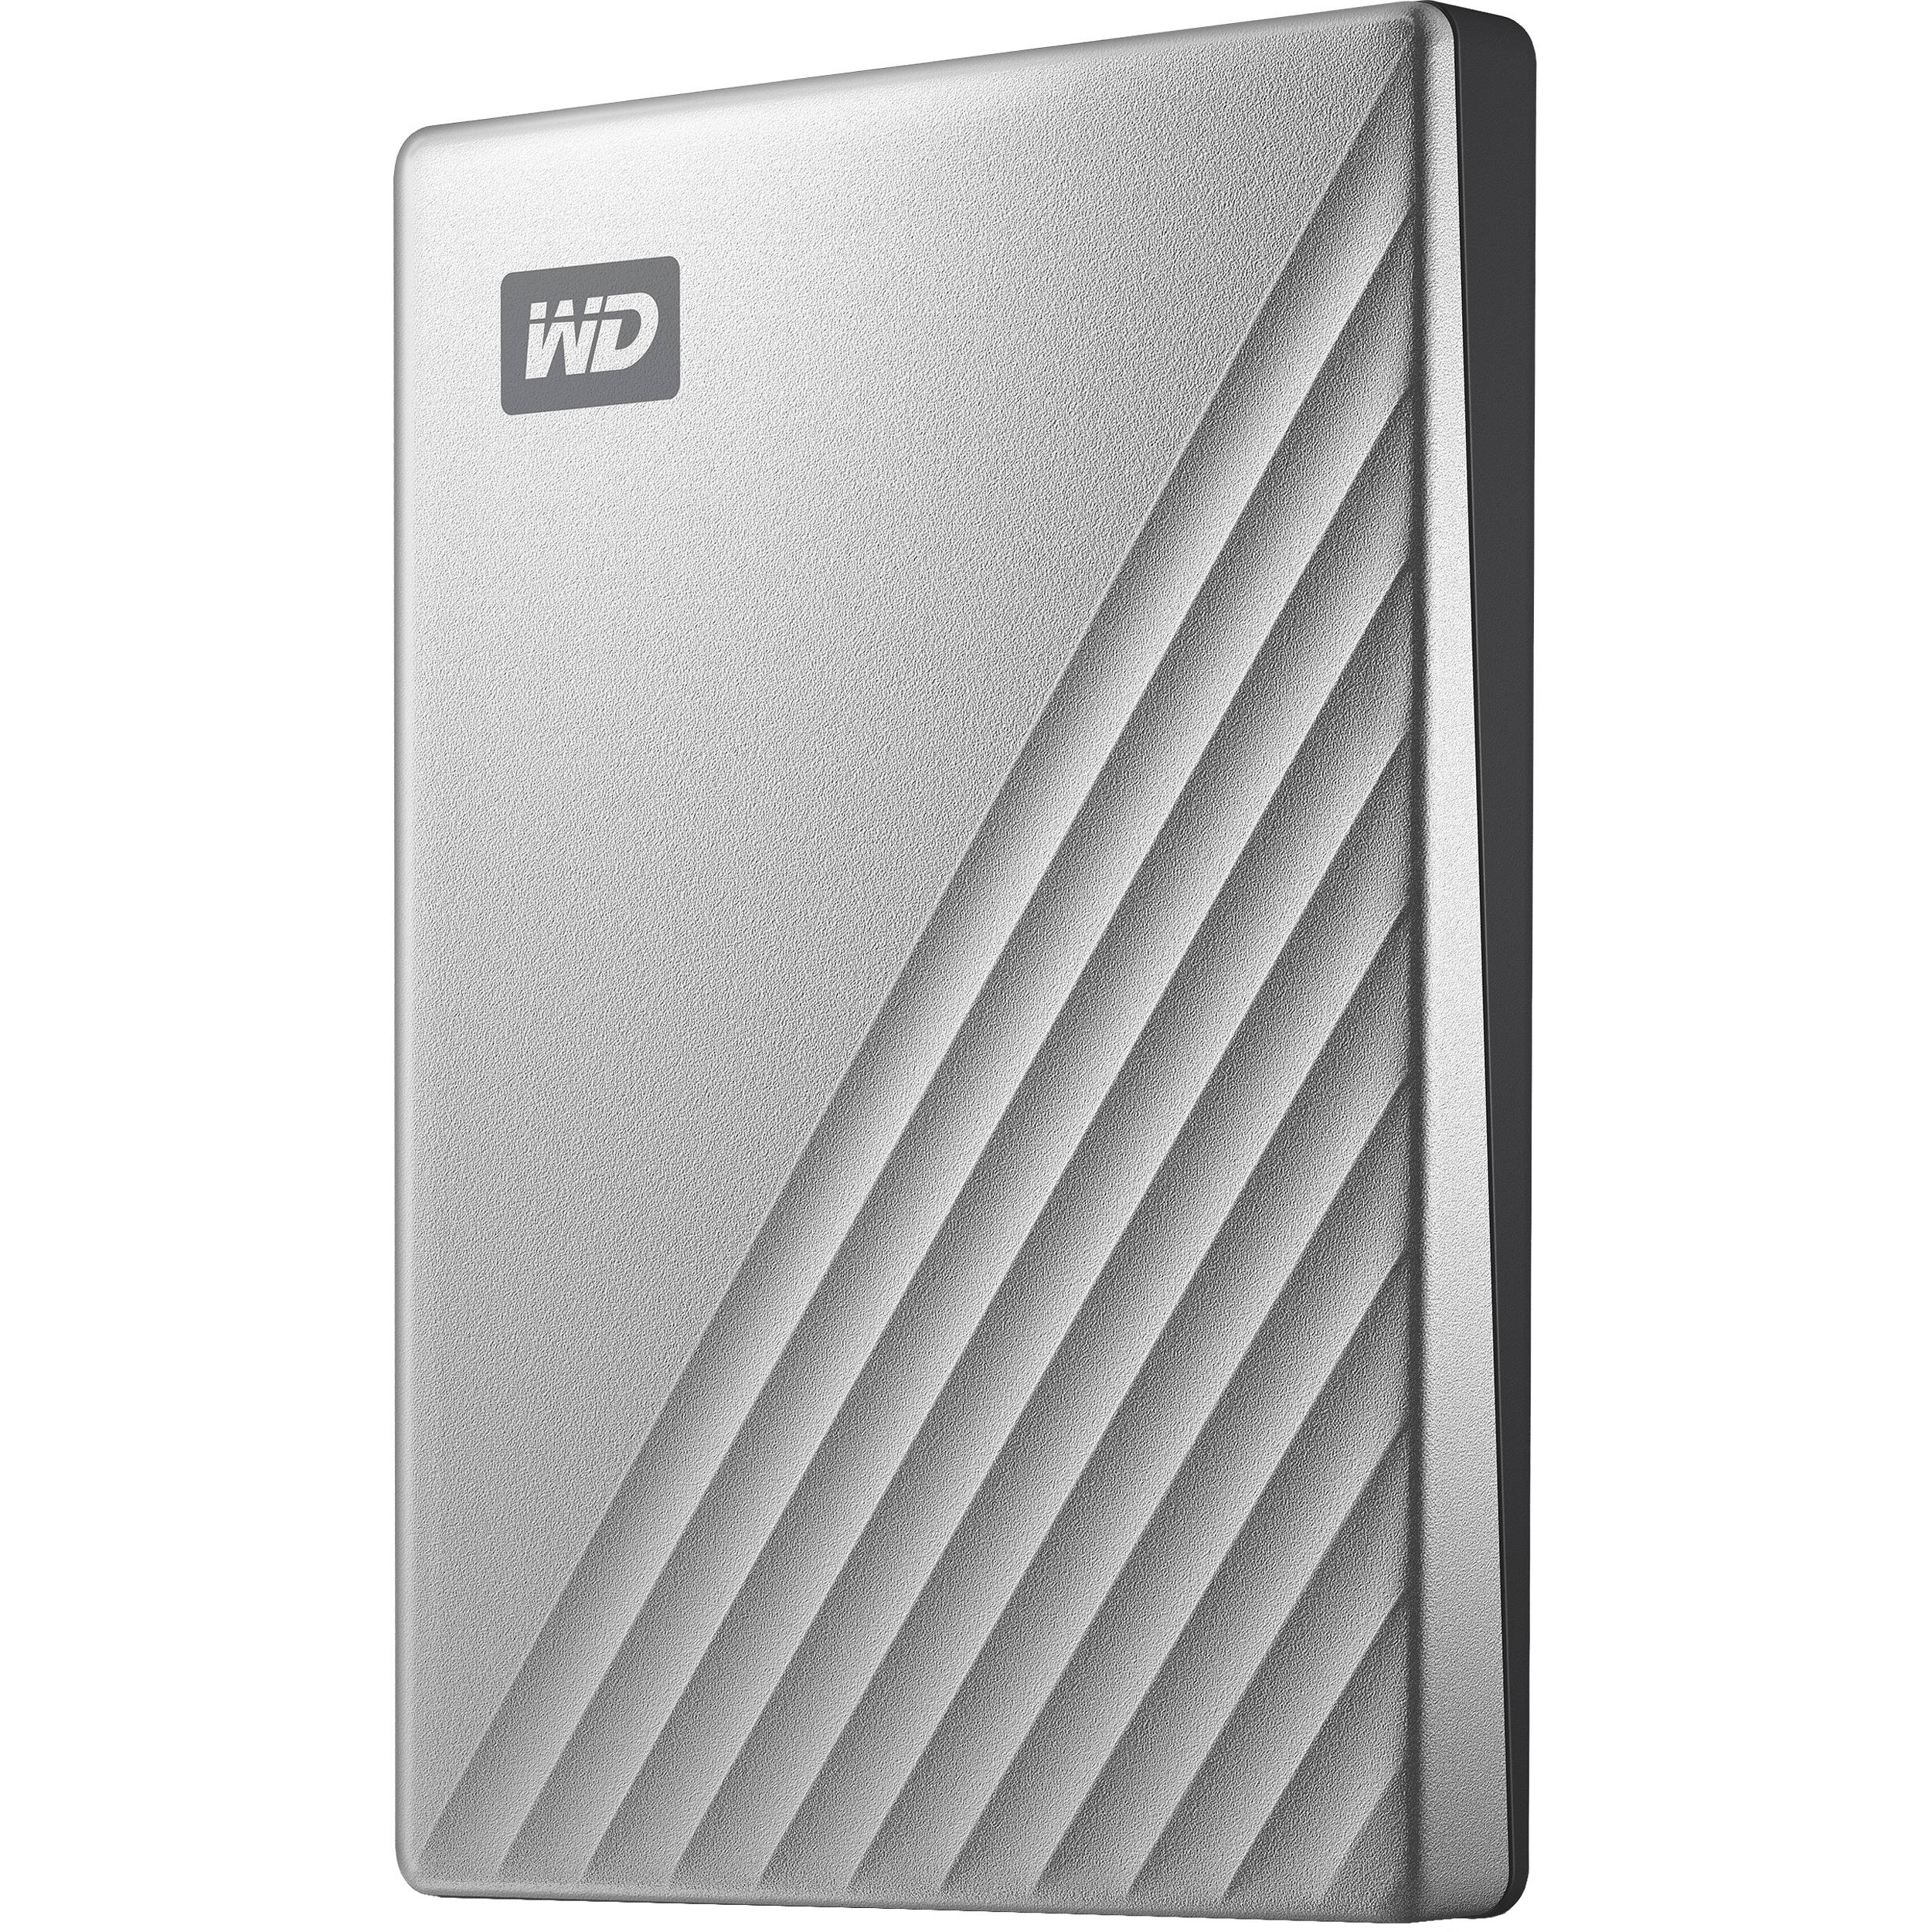 WESTERN DIGITAL WD My Passport for Mac Portable 1TB 2TB USB 3.0 Hard Drive Cable